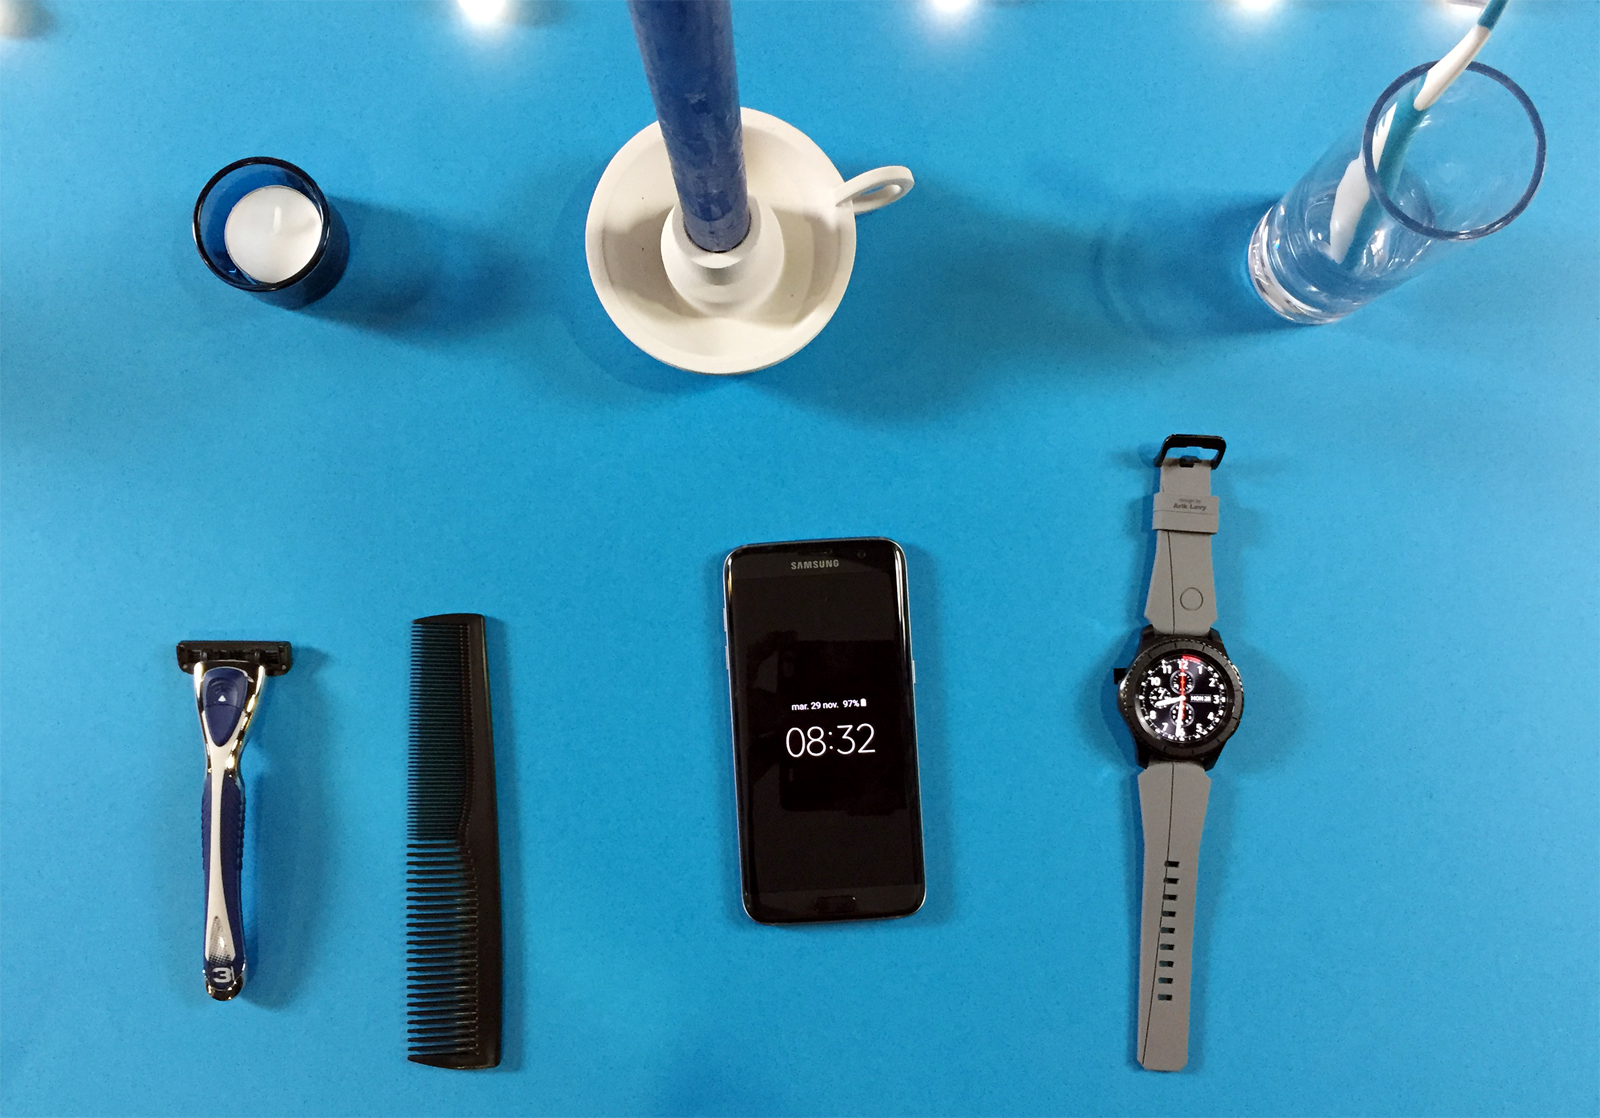 samsung-gear-s3-test-avis-montre-connectee-photo-by-blog-united-states-of-paris